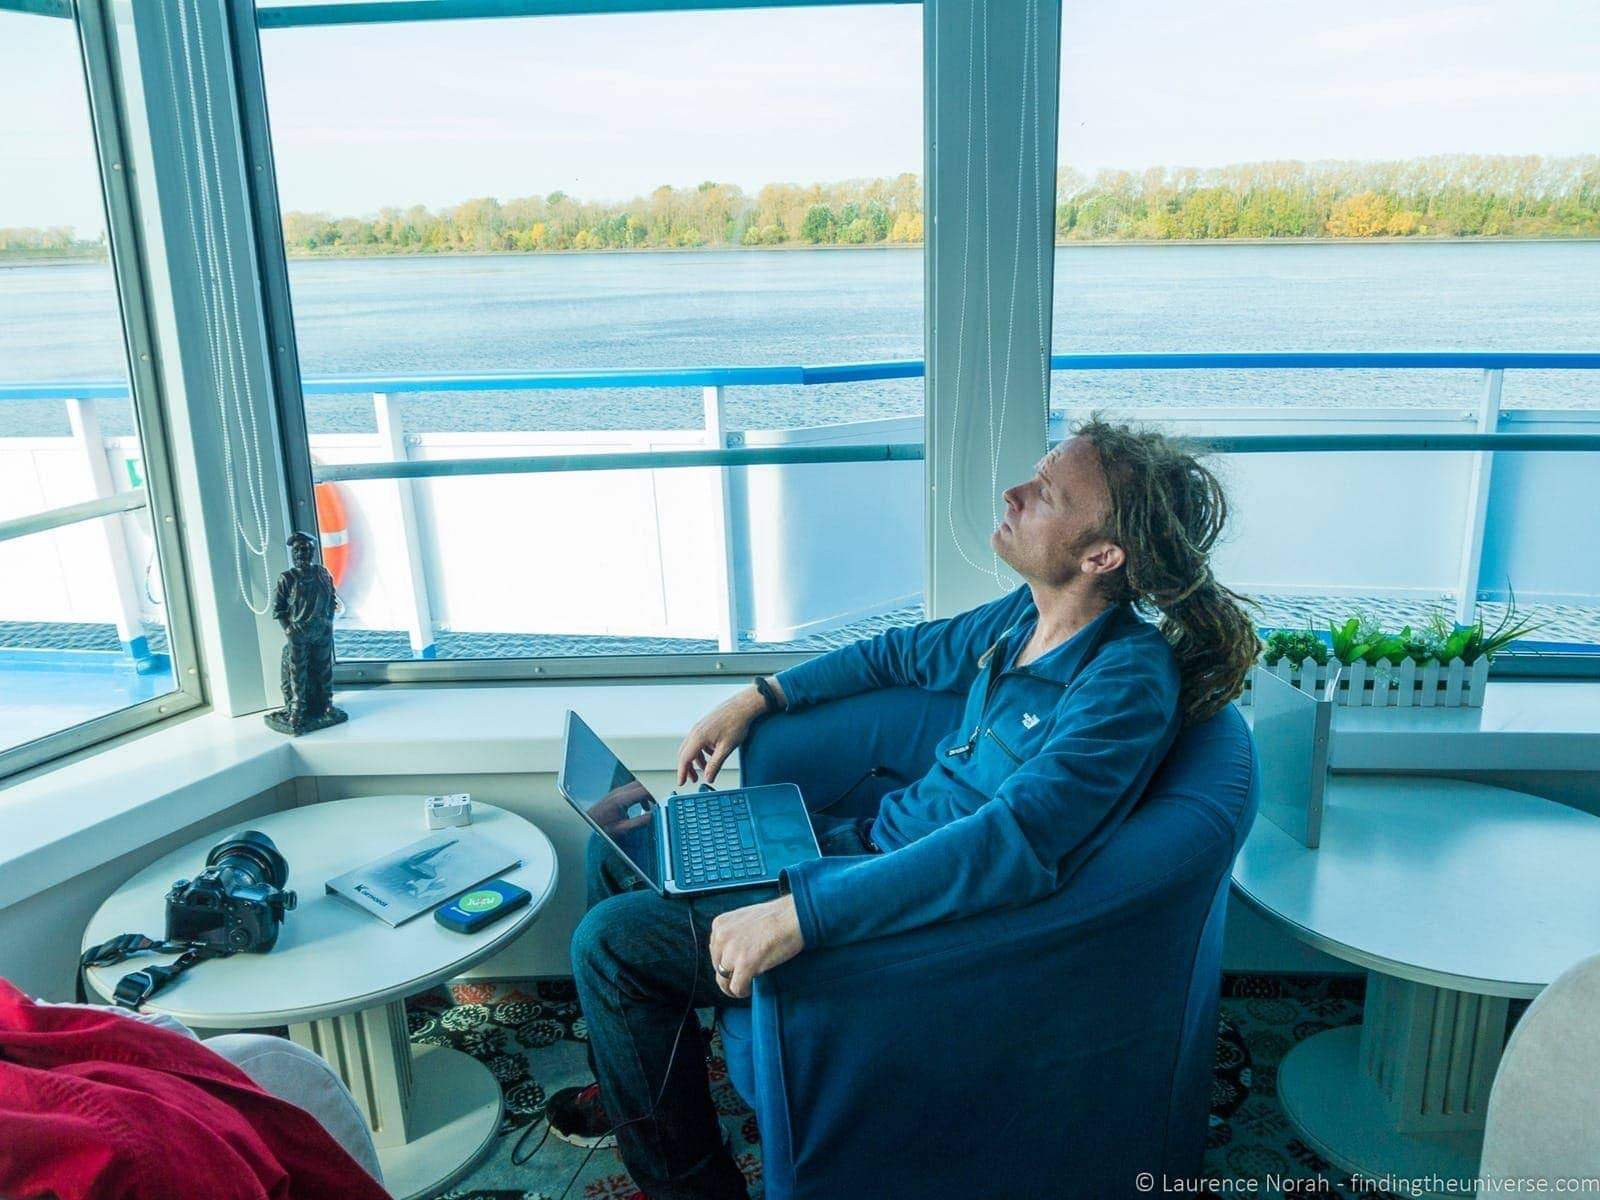 Russia river cruise working on laptop